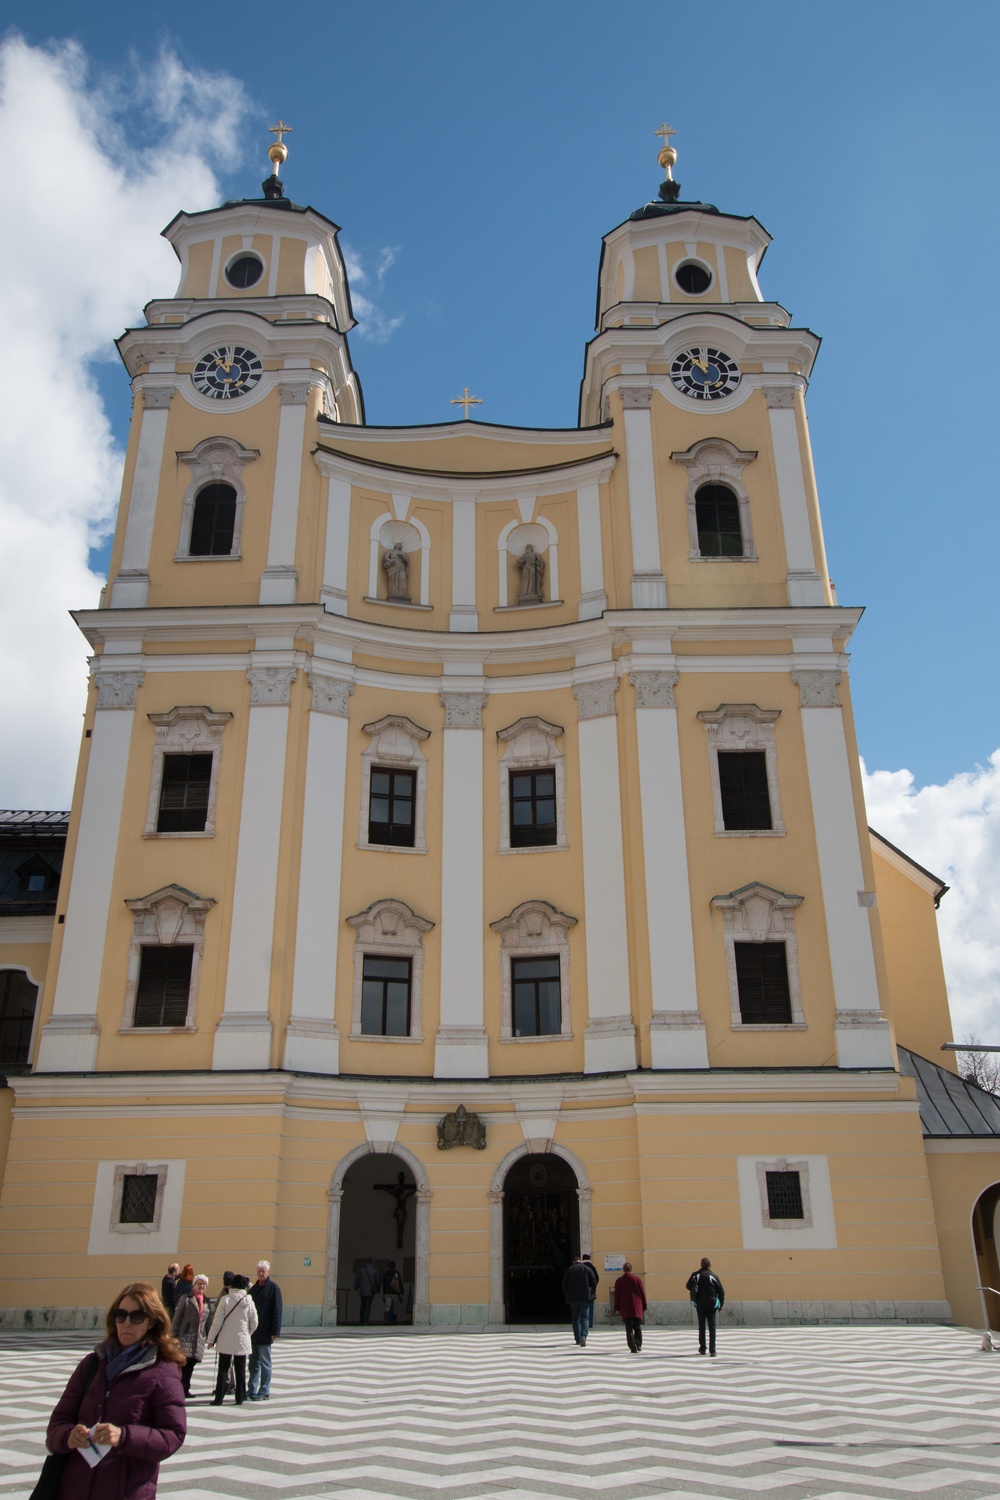 St. michael's in Mondsee